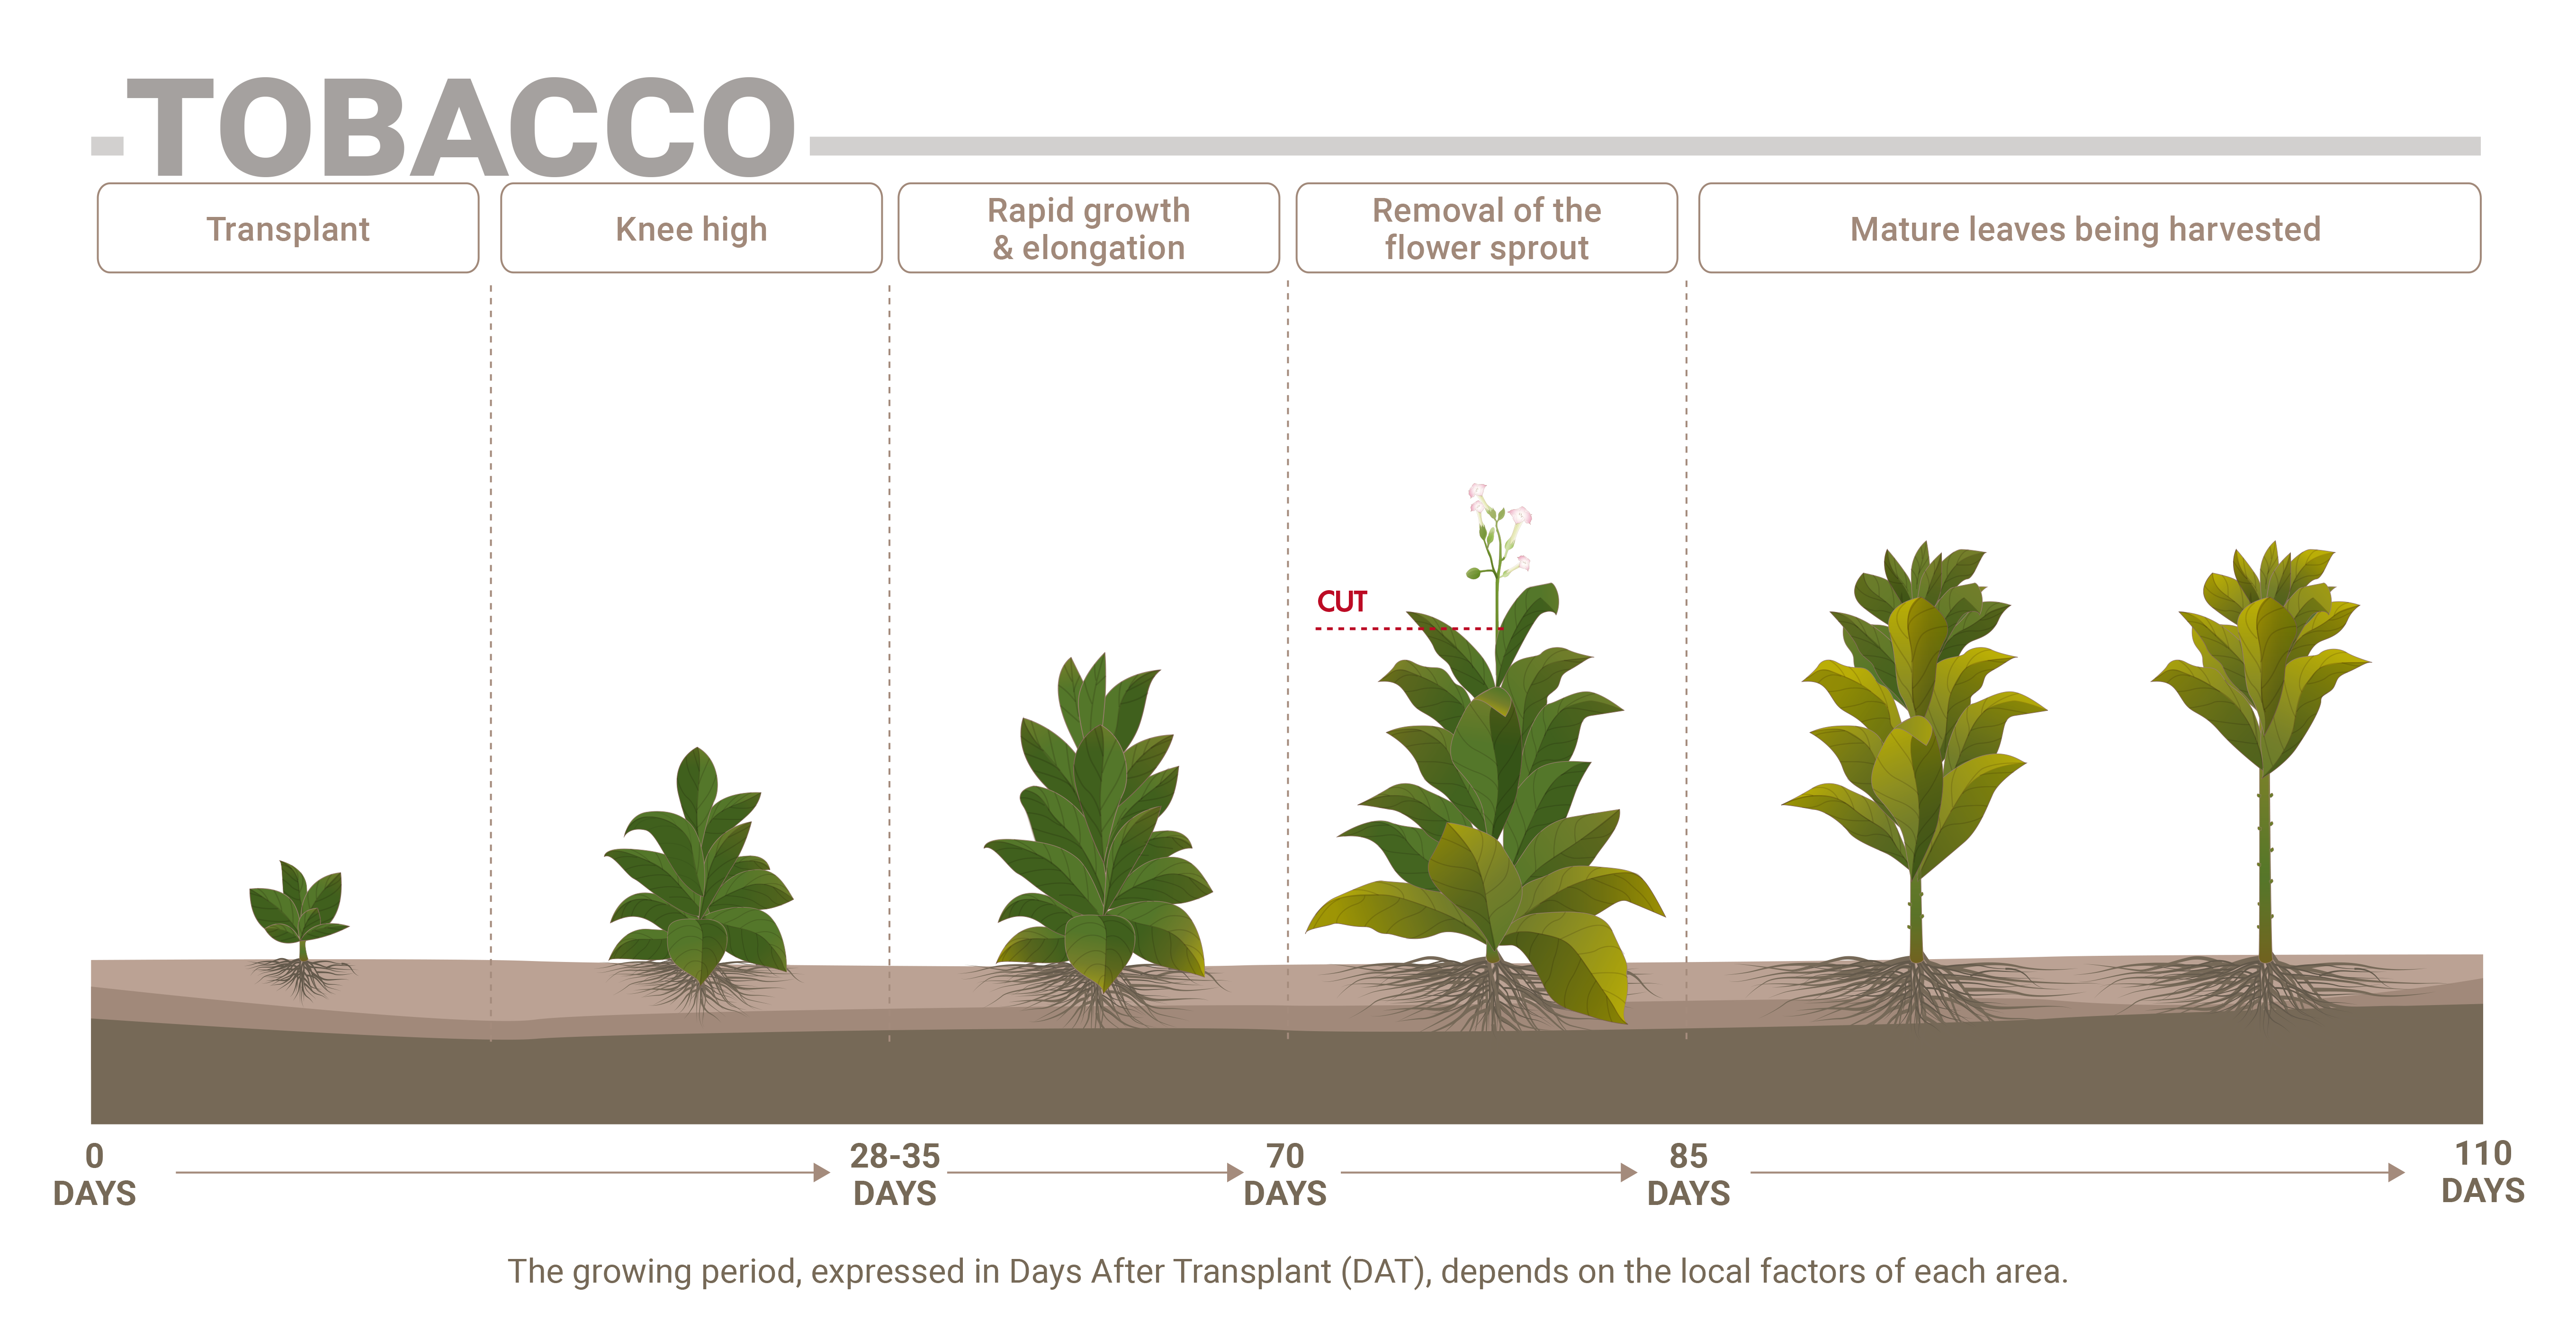 Tobacco phenological phases